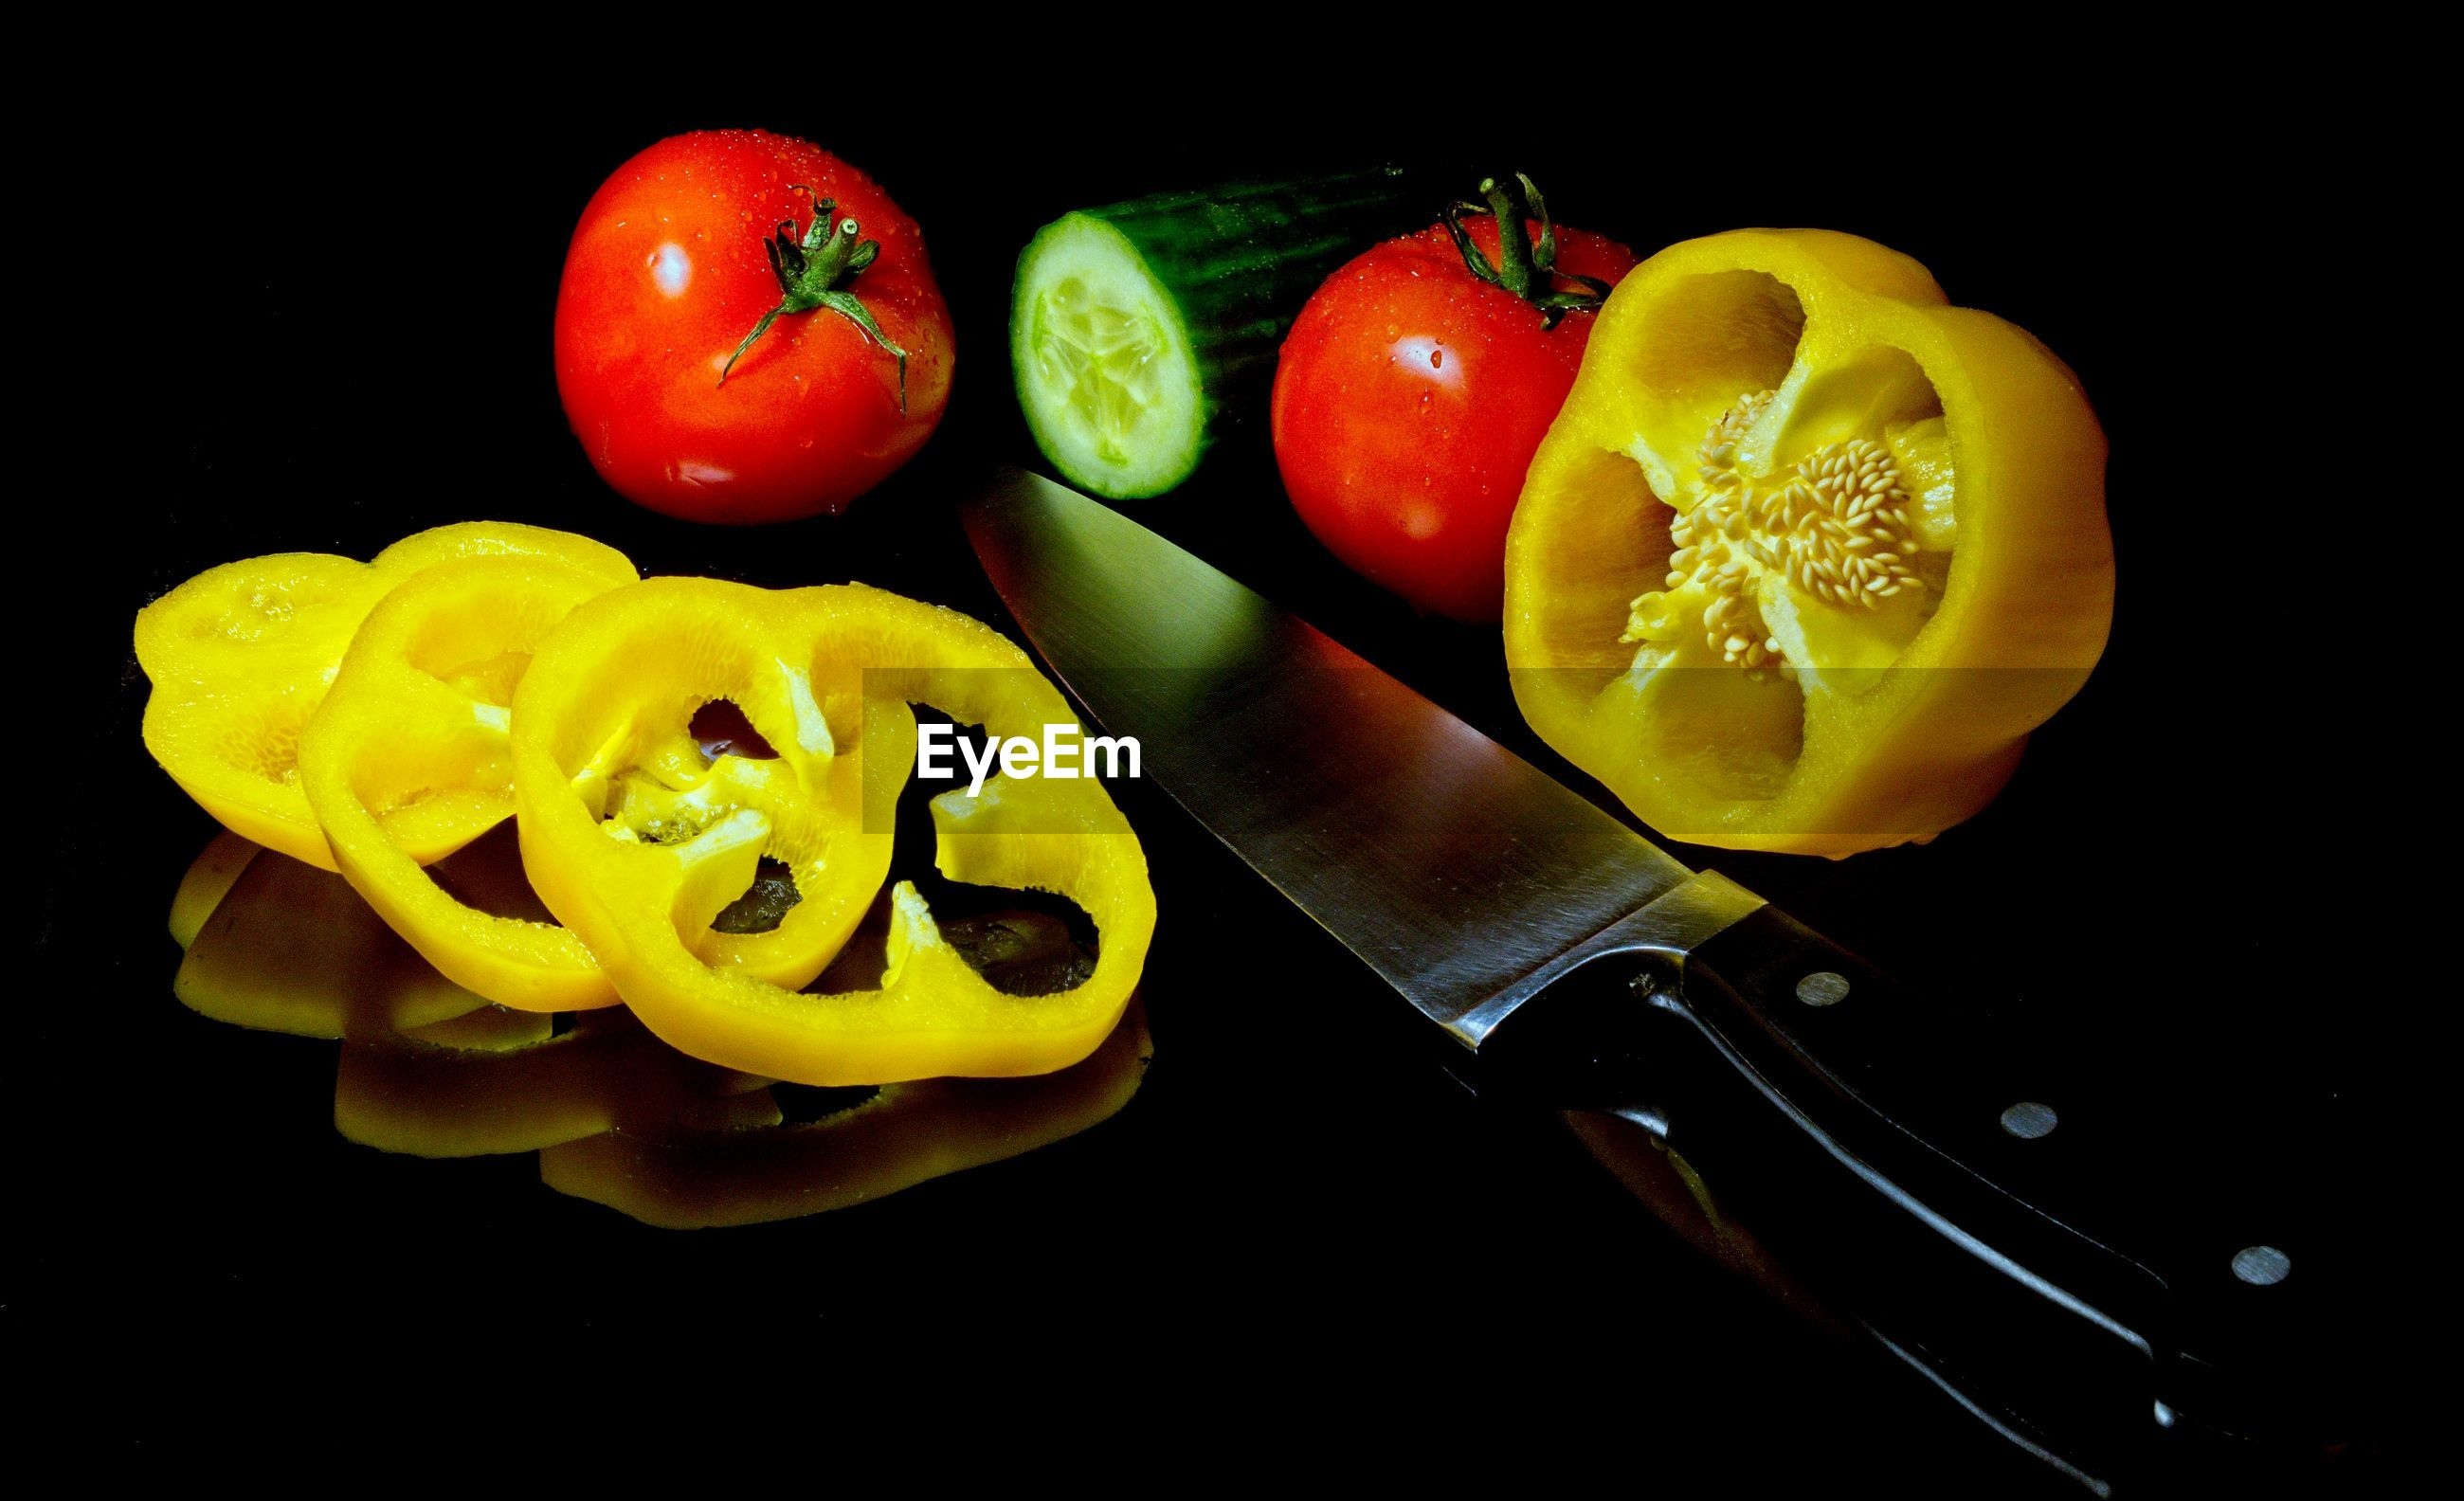 HIGH ANGLE VIEW OF CHOPPED FRUITS IN BLACK BACKGROUND